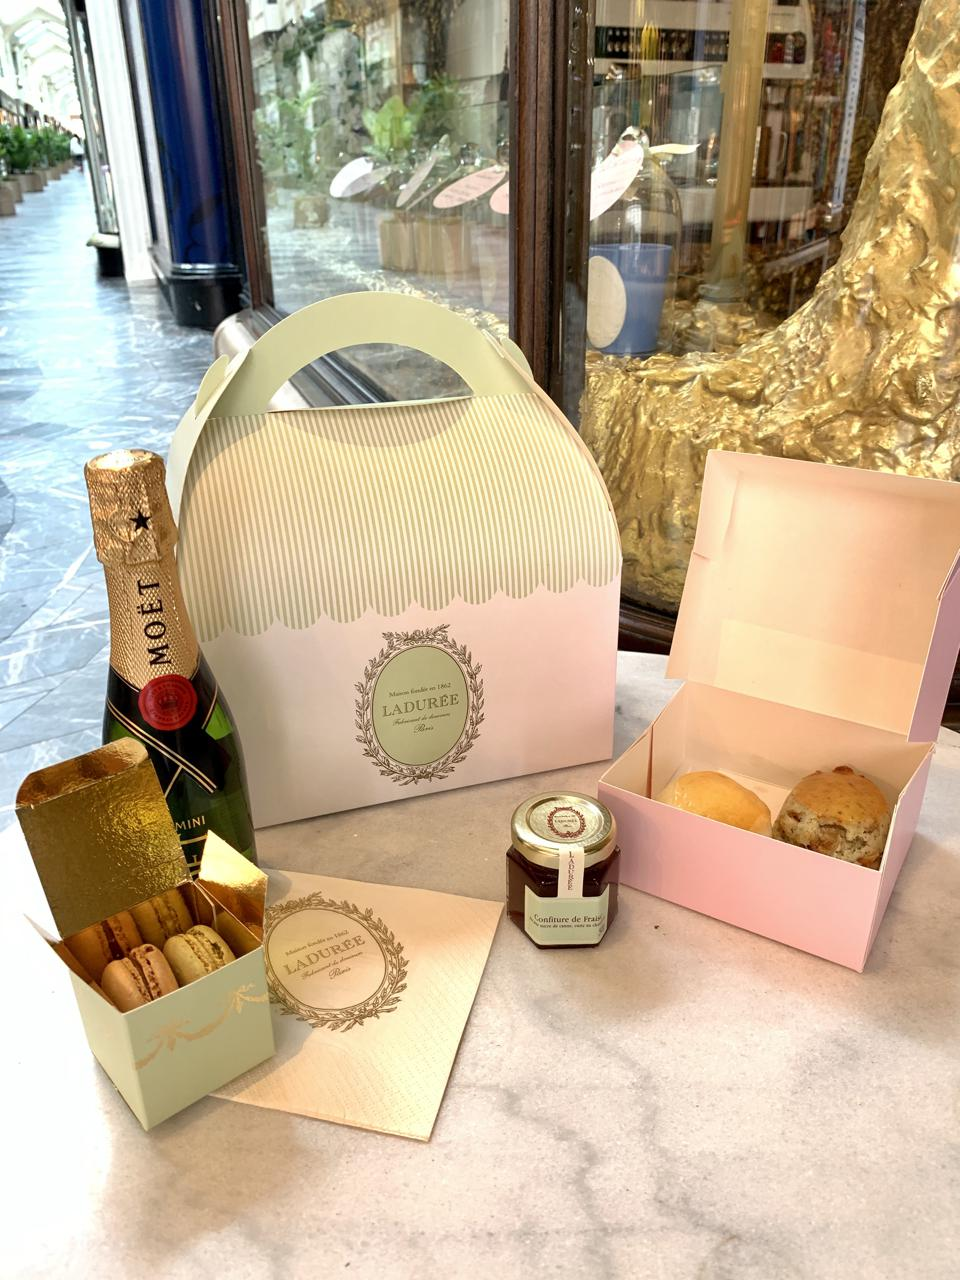 Tea for Two At Burlington Arcade in partnership with La Duree and Moet et Chandon